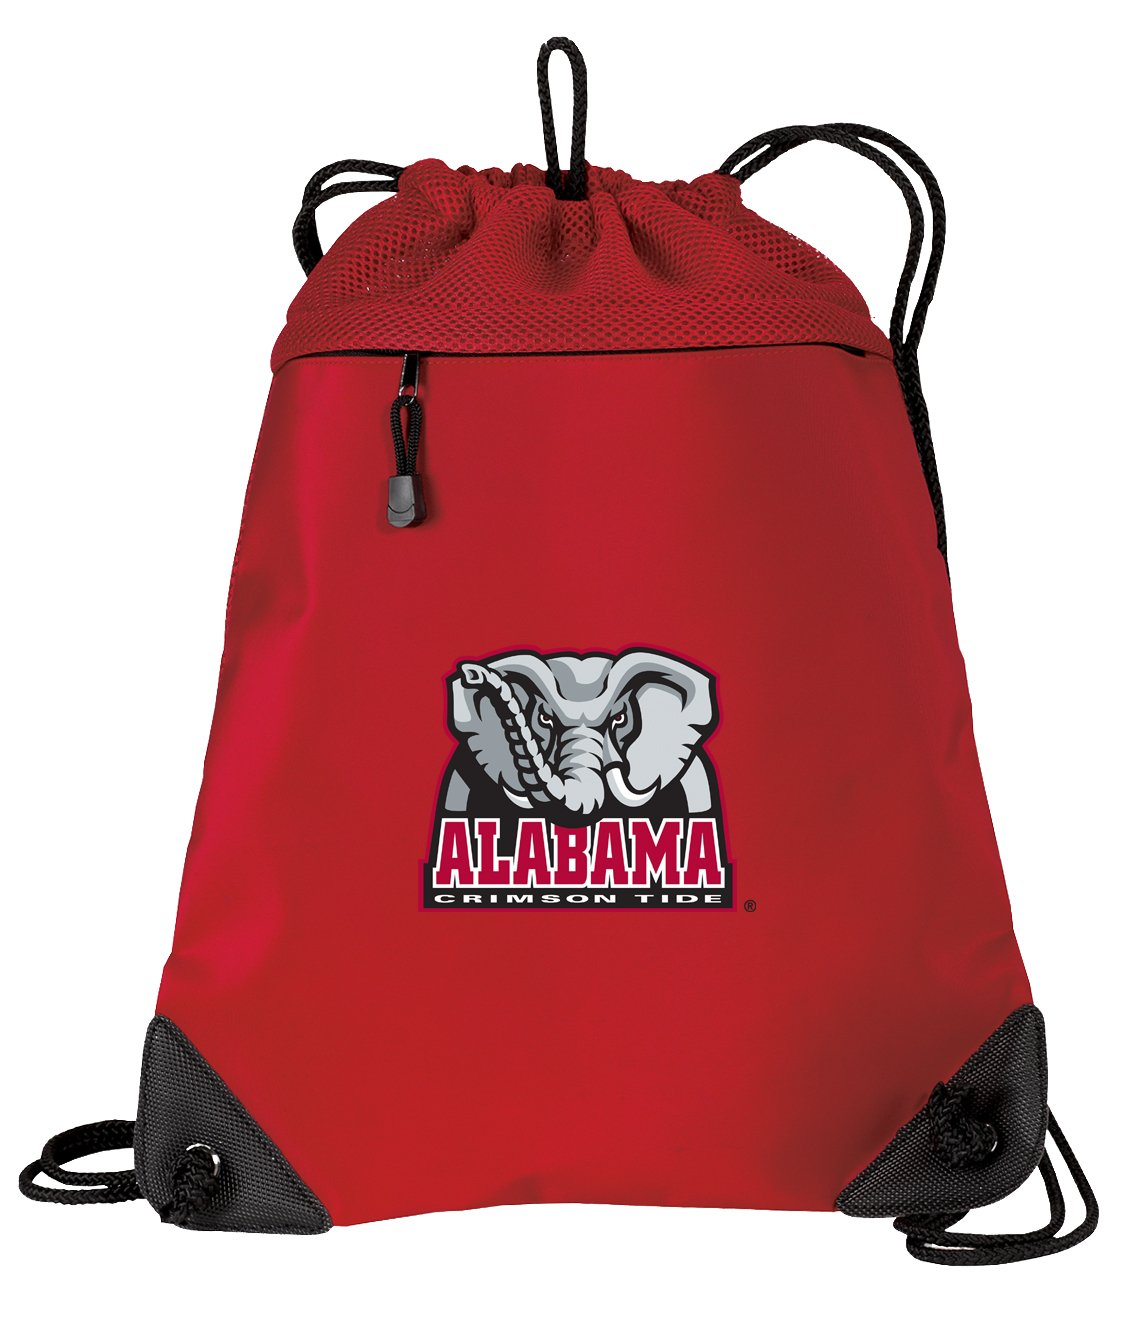 Broad Bay Alabama Drawstring Backpack Bag University of Alabama Cinch Pack - UNIQUE MESH & MICROFIBER by Broad Bay (Image #1)